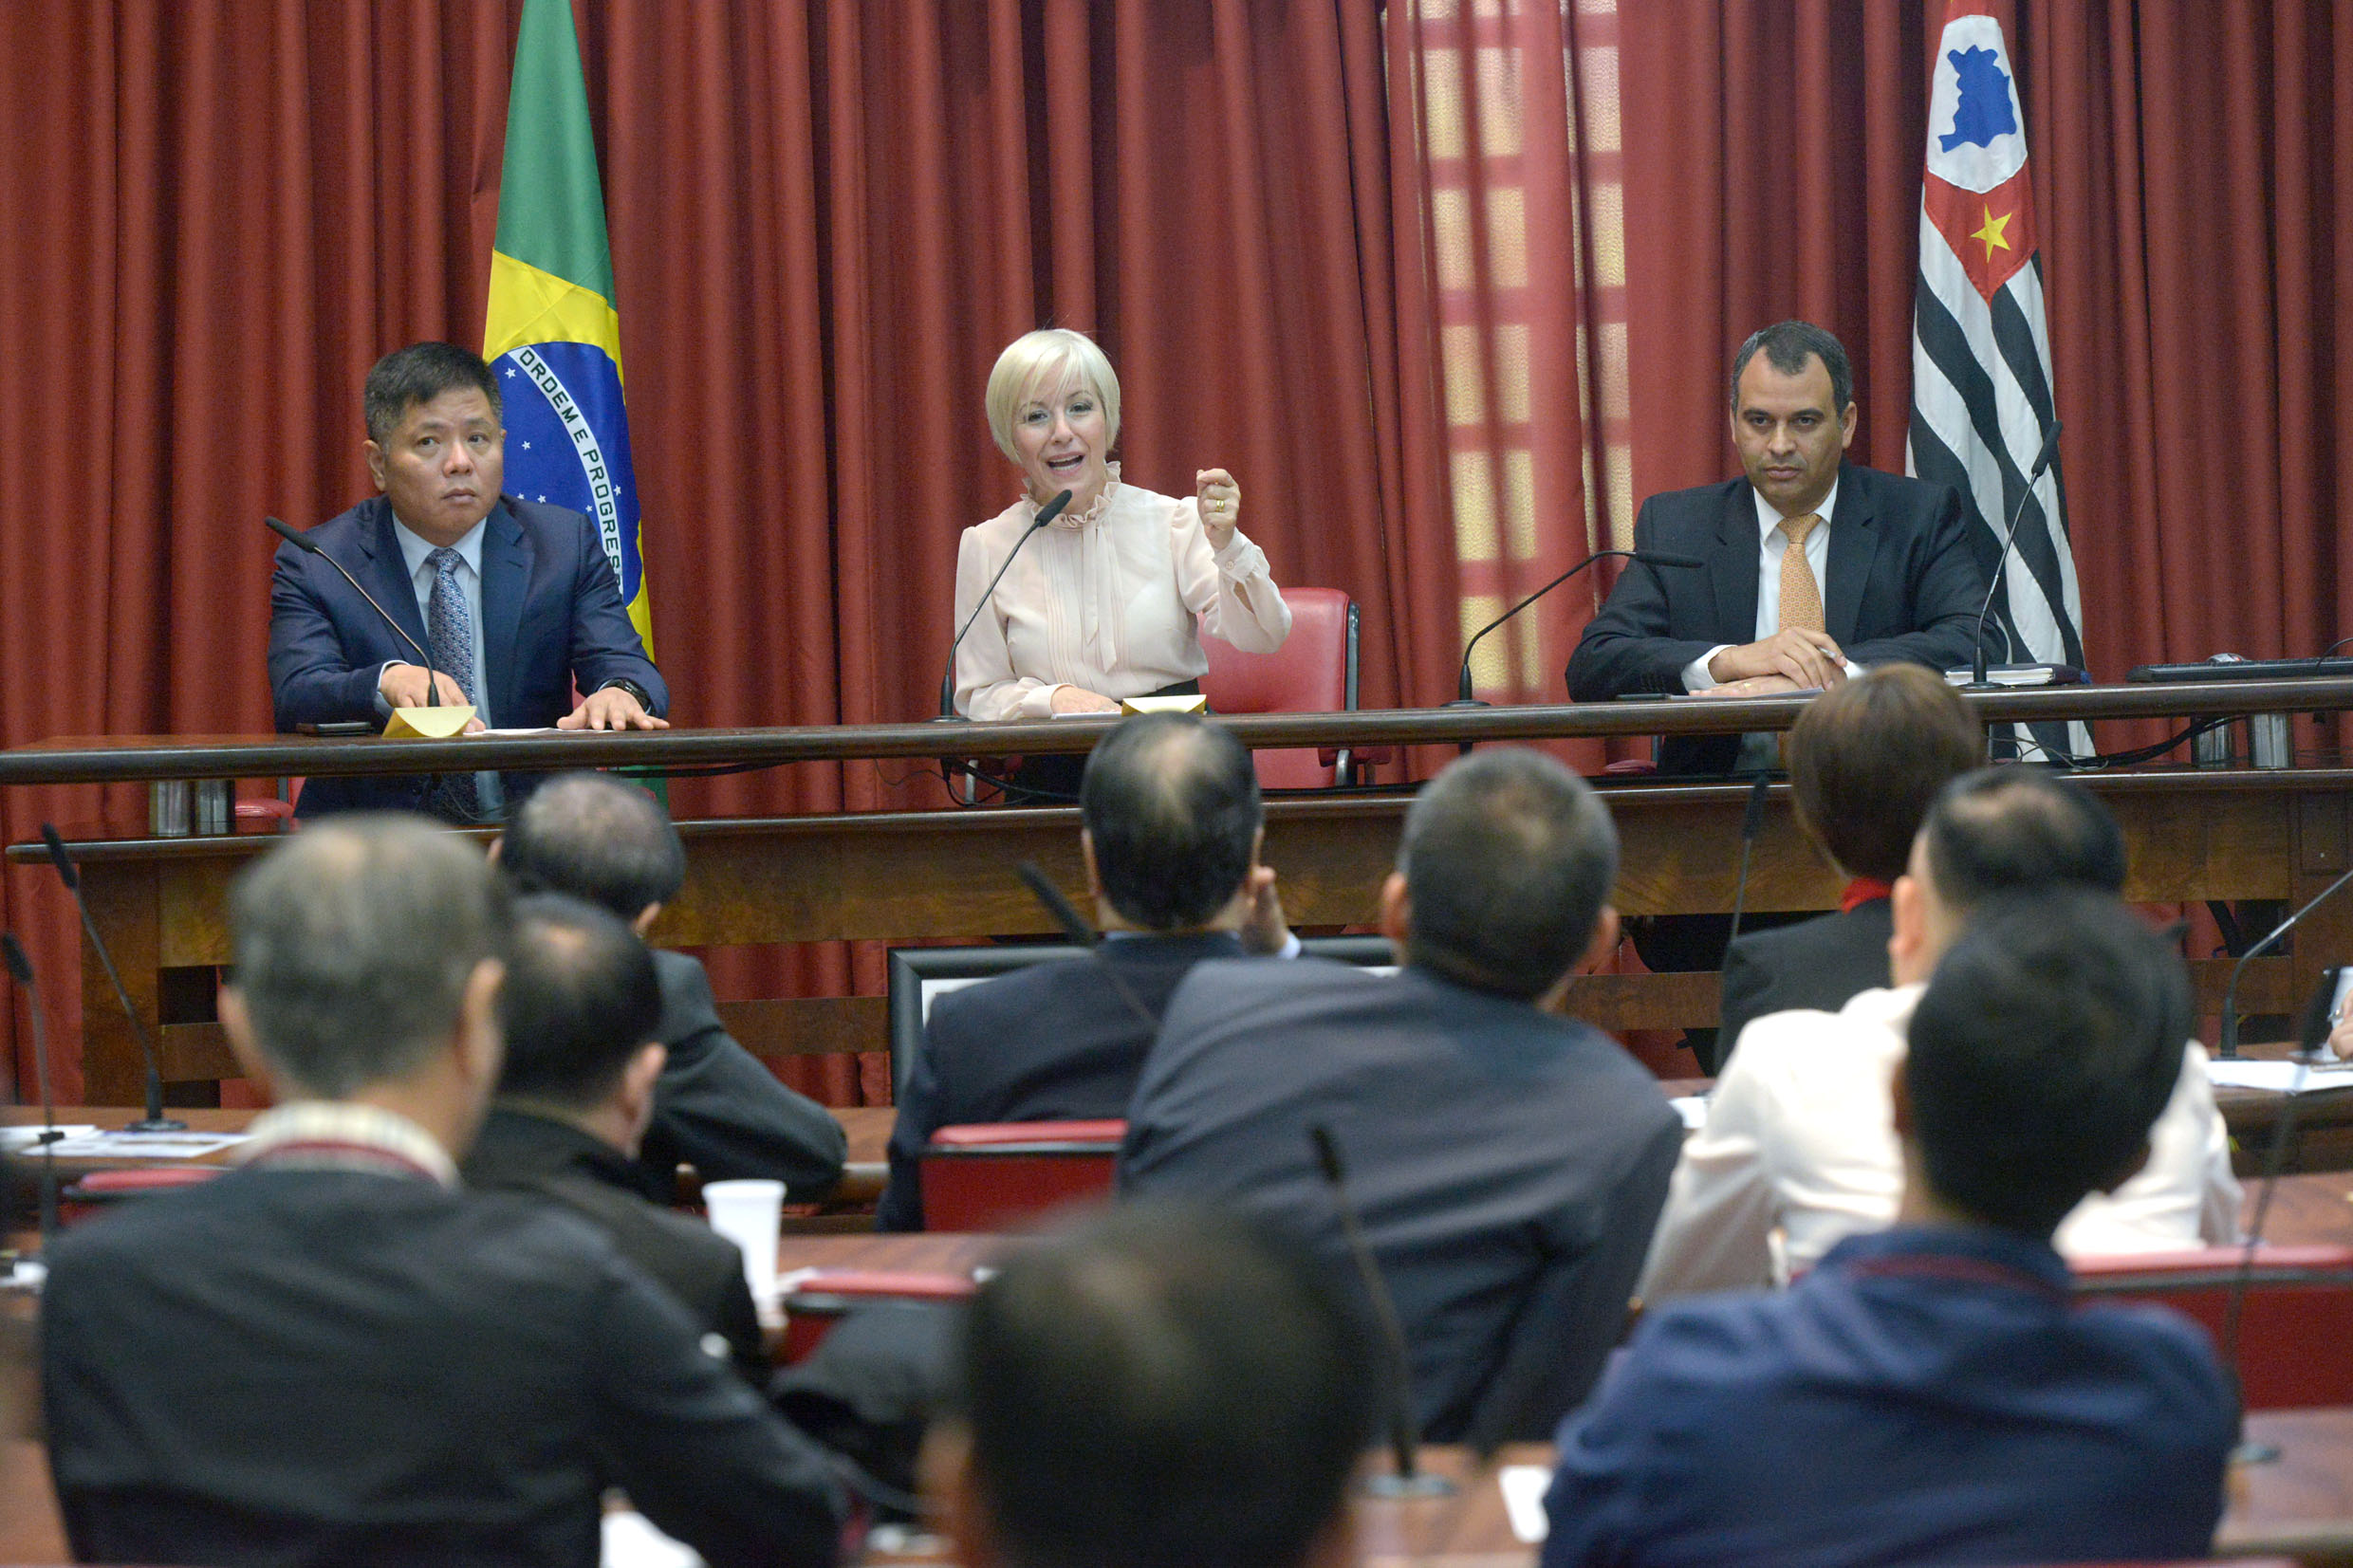 Zhang Wei, Dra. Damaris Moura e Markos Henrique<a style='float:right' href='https://www3.al.sp.gov.br/repositorio/noticia/N-08-2019/fg237192.jpg' target=_blank><img src='/_img/material-file-download-white.png' width='14px' alt='Clique para baixar a imagem'></a>